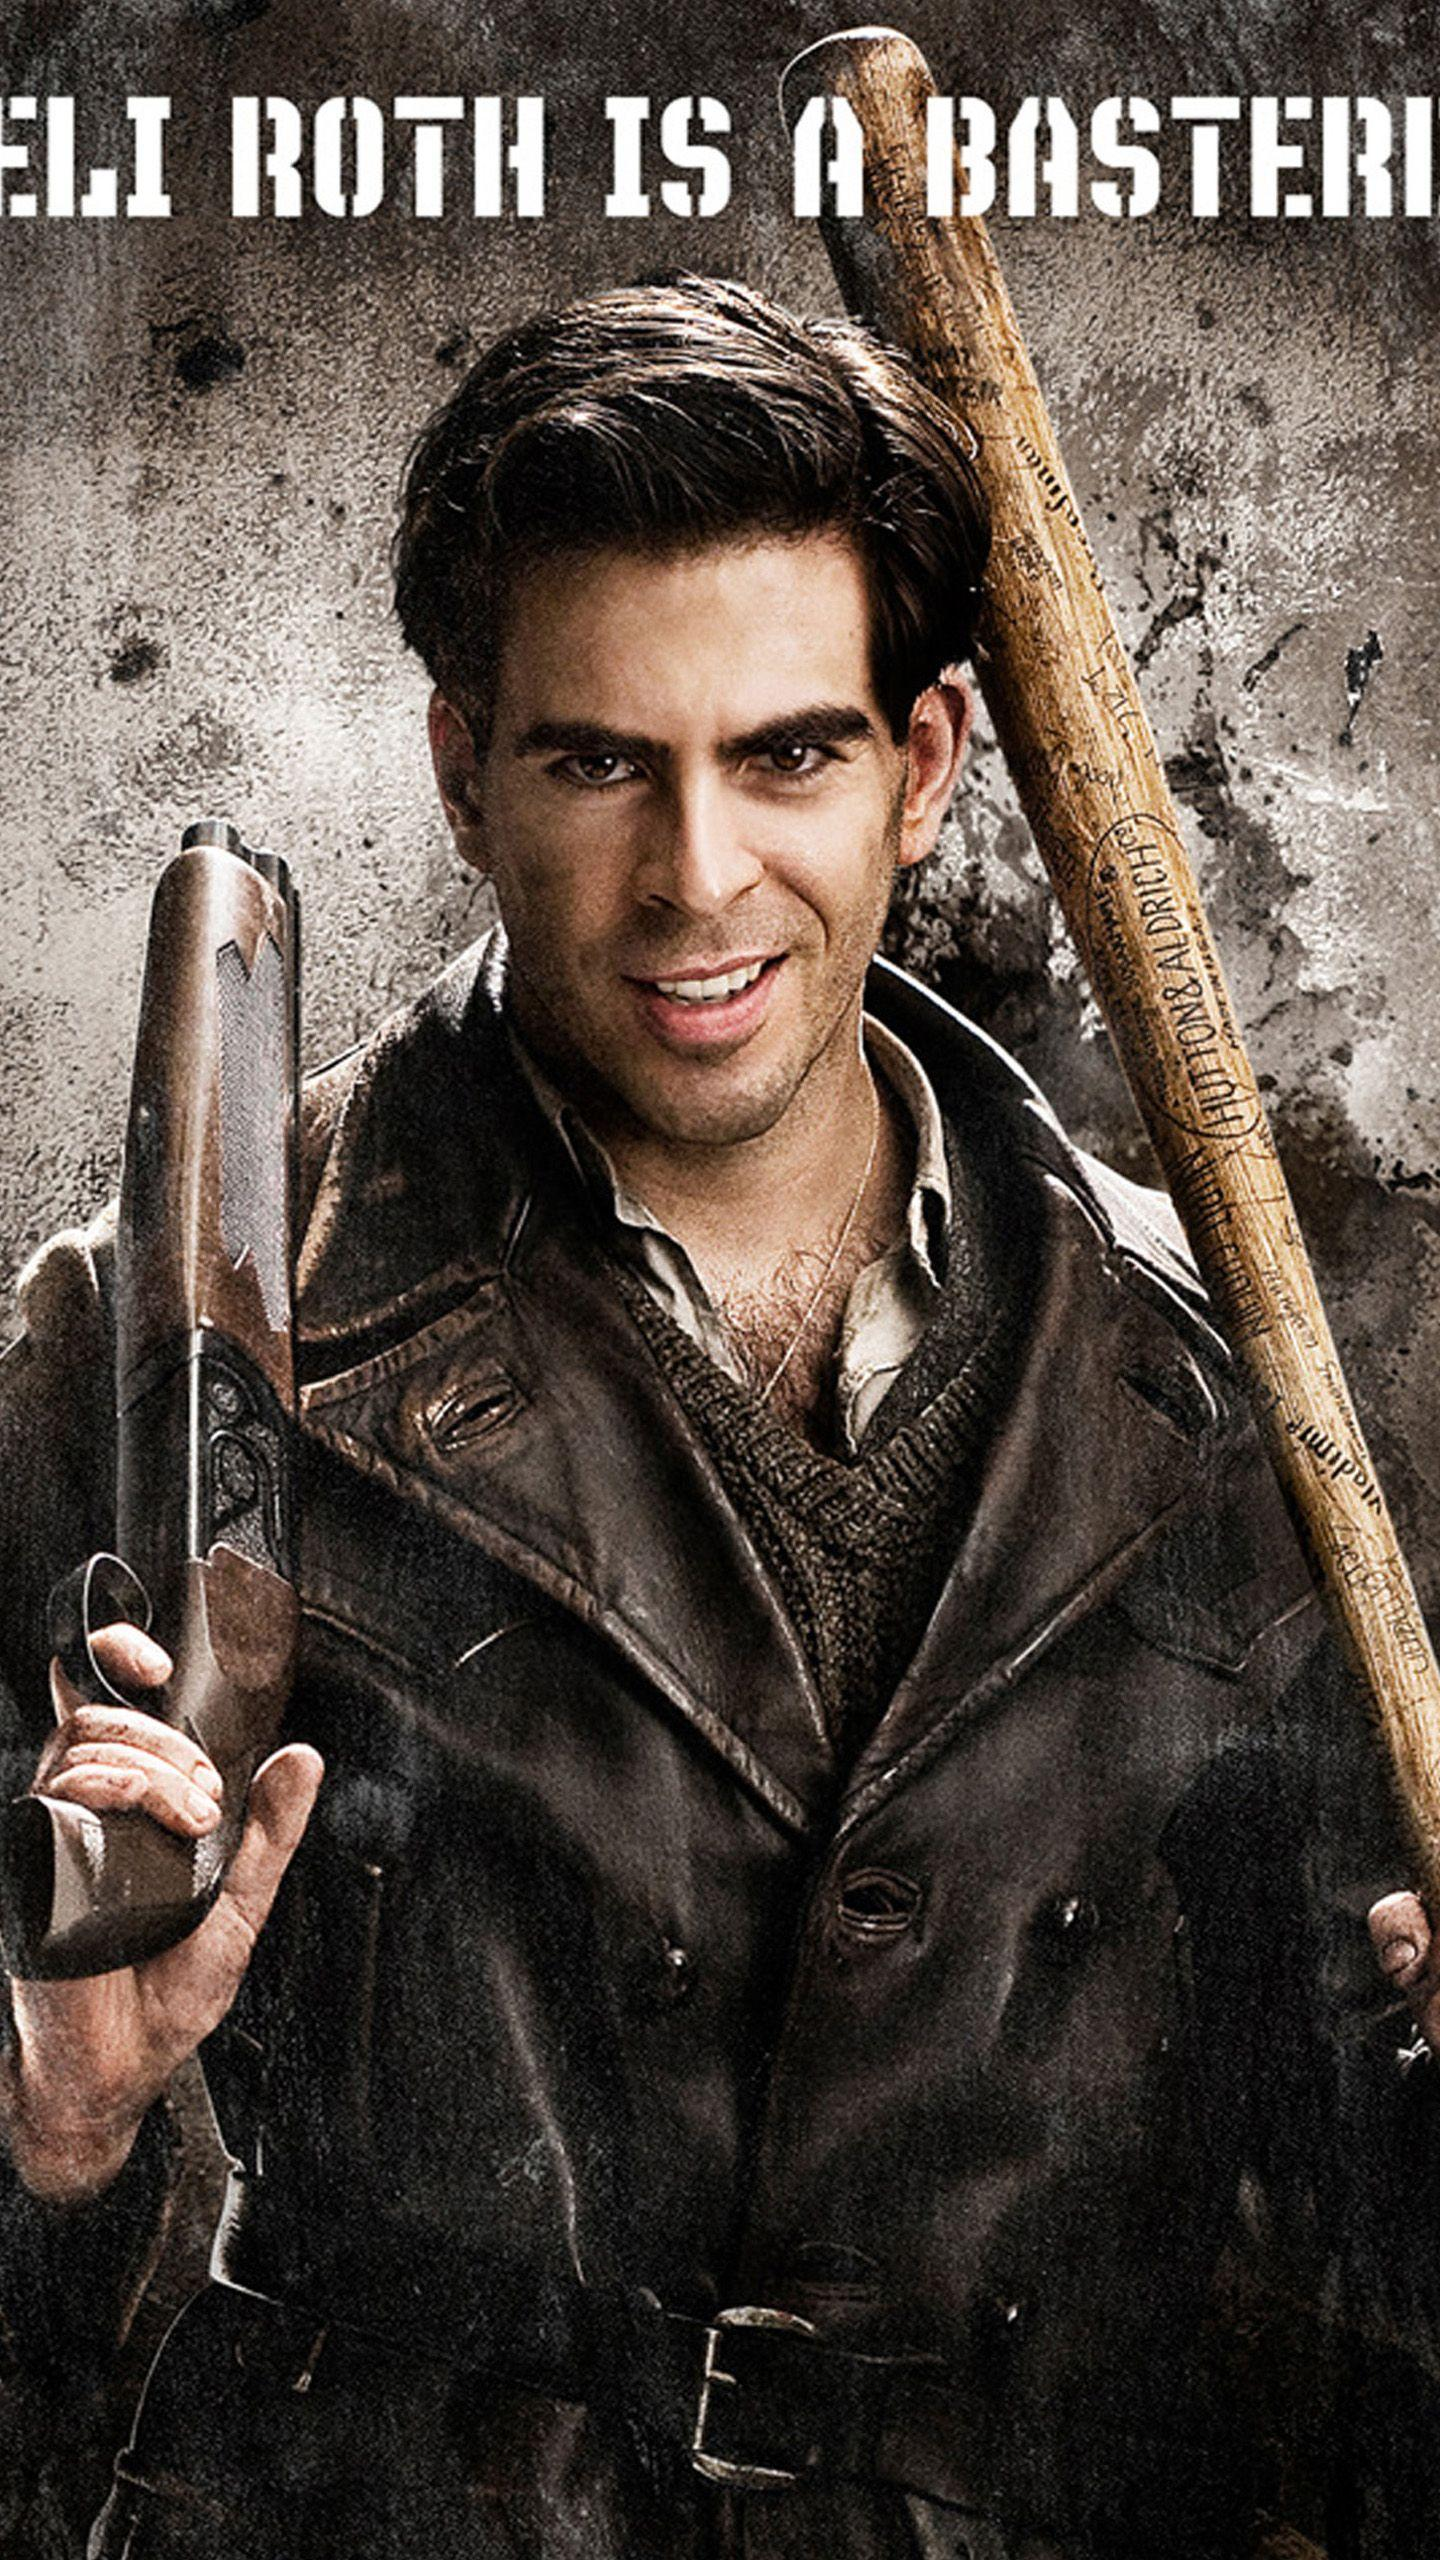 inglourious basterds eli roth LG G3 Wallpapers